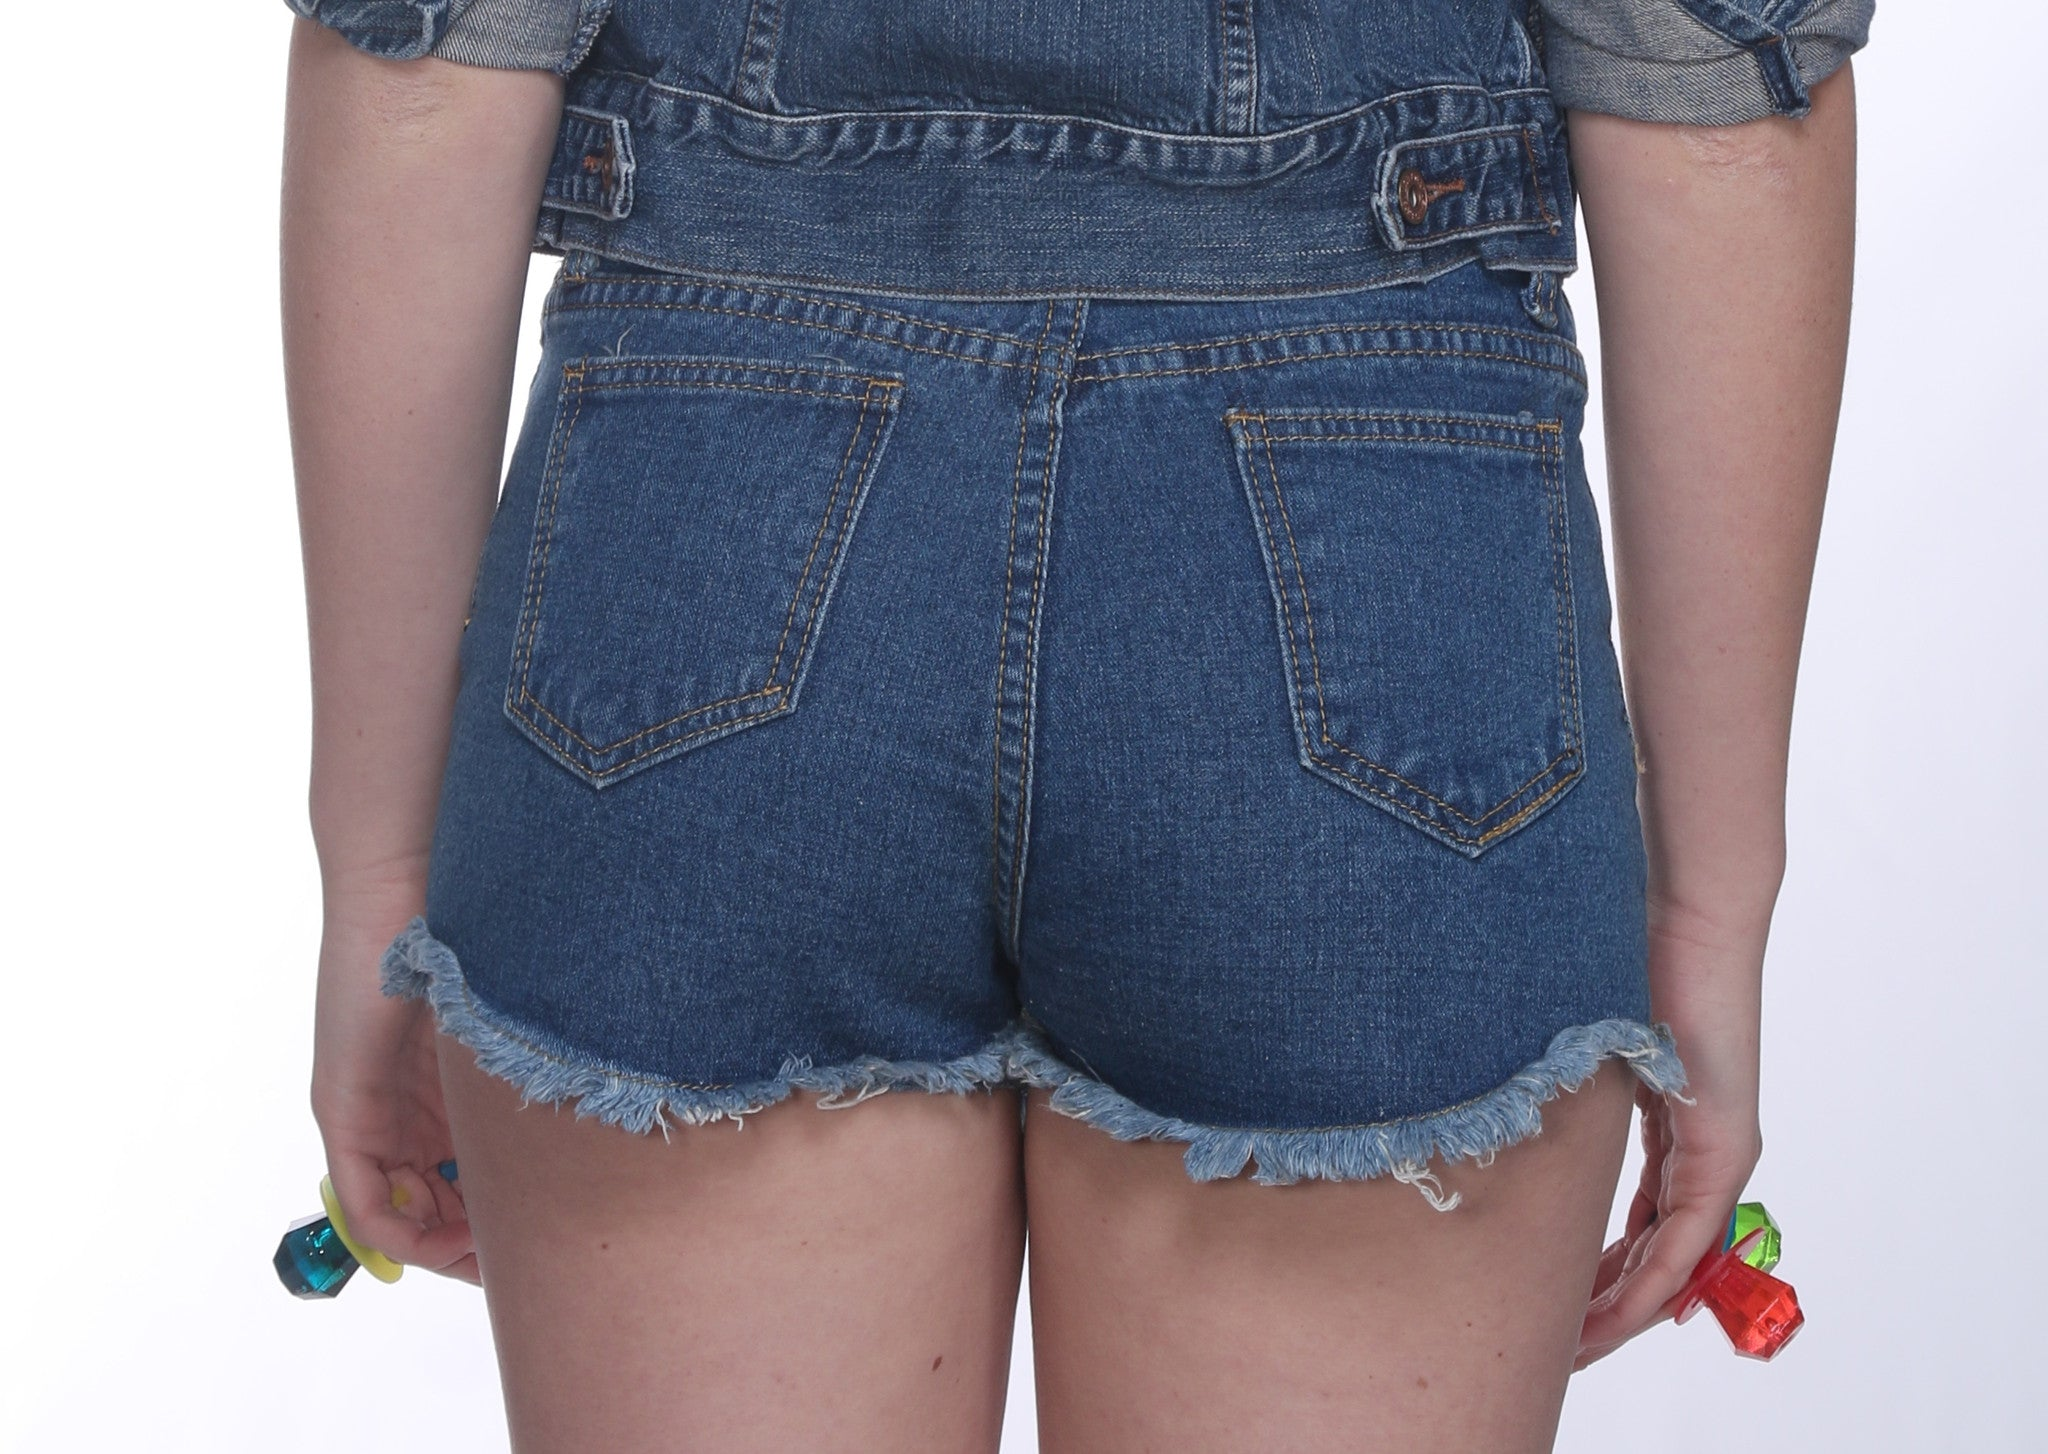 Custom 7ven x Betsey Johnson Patched Shorts #6